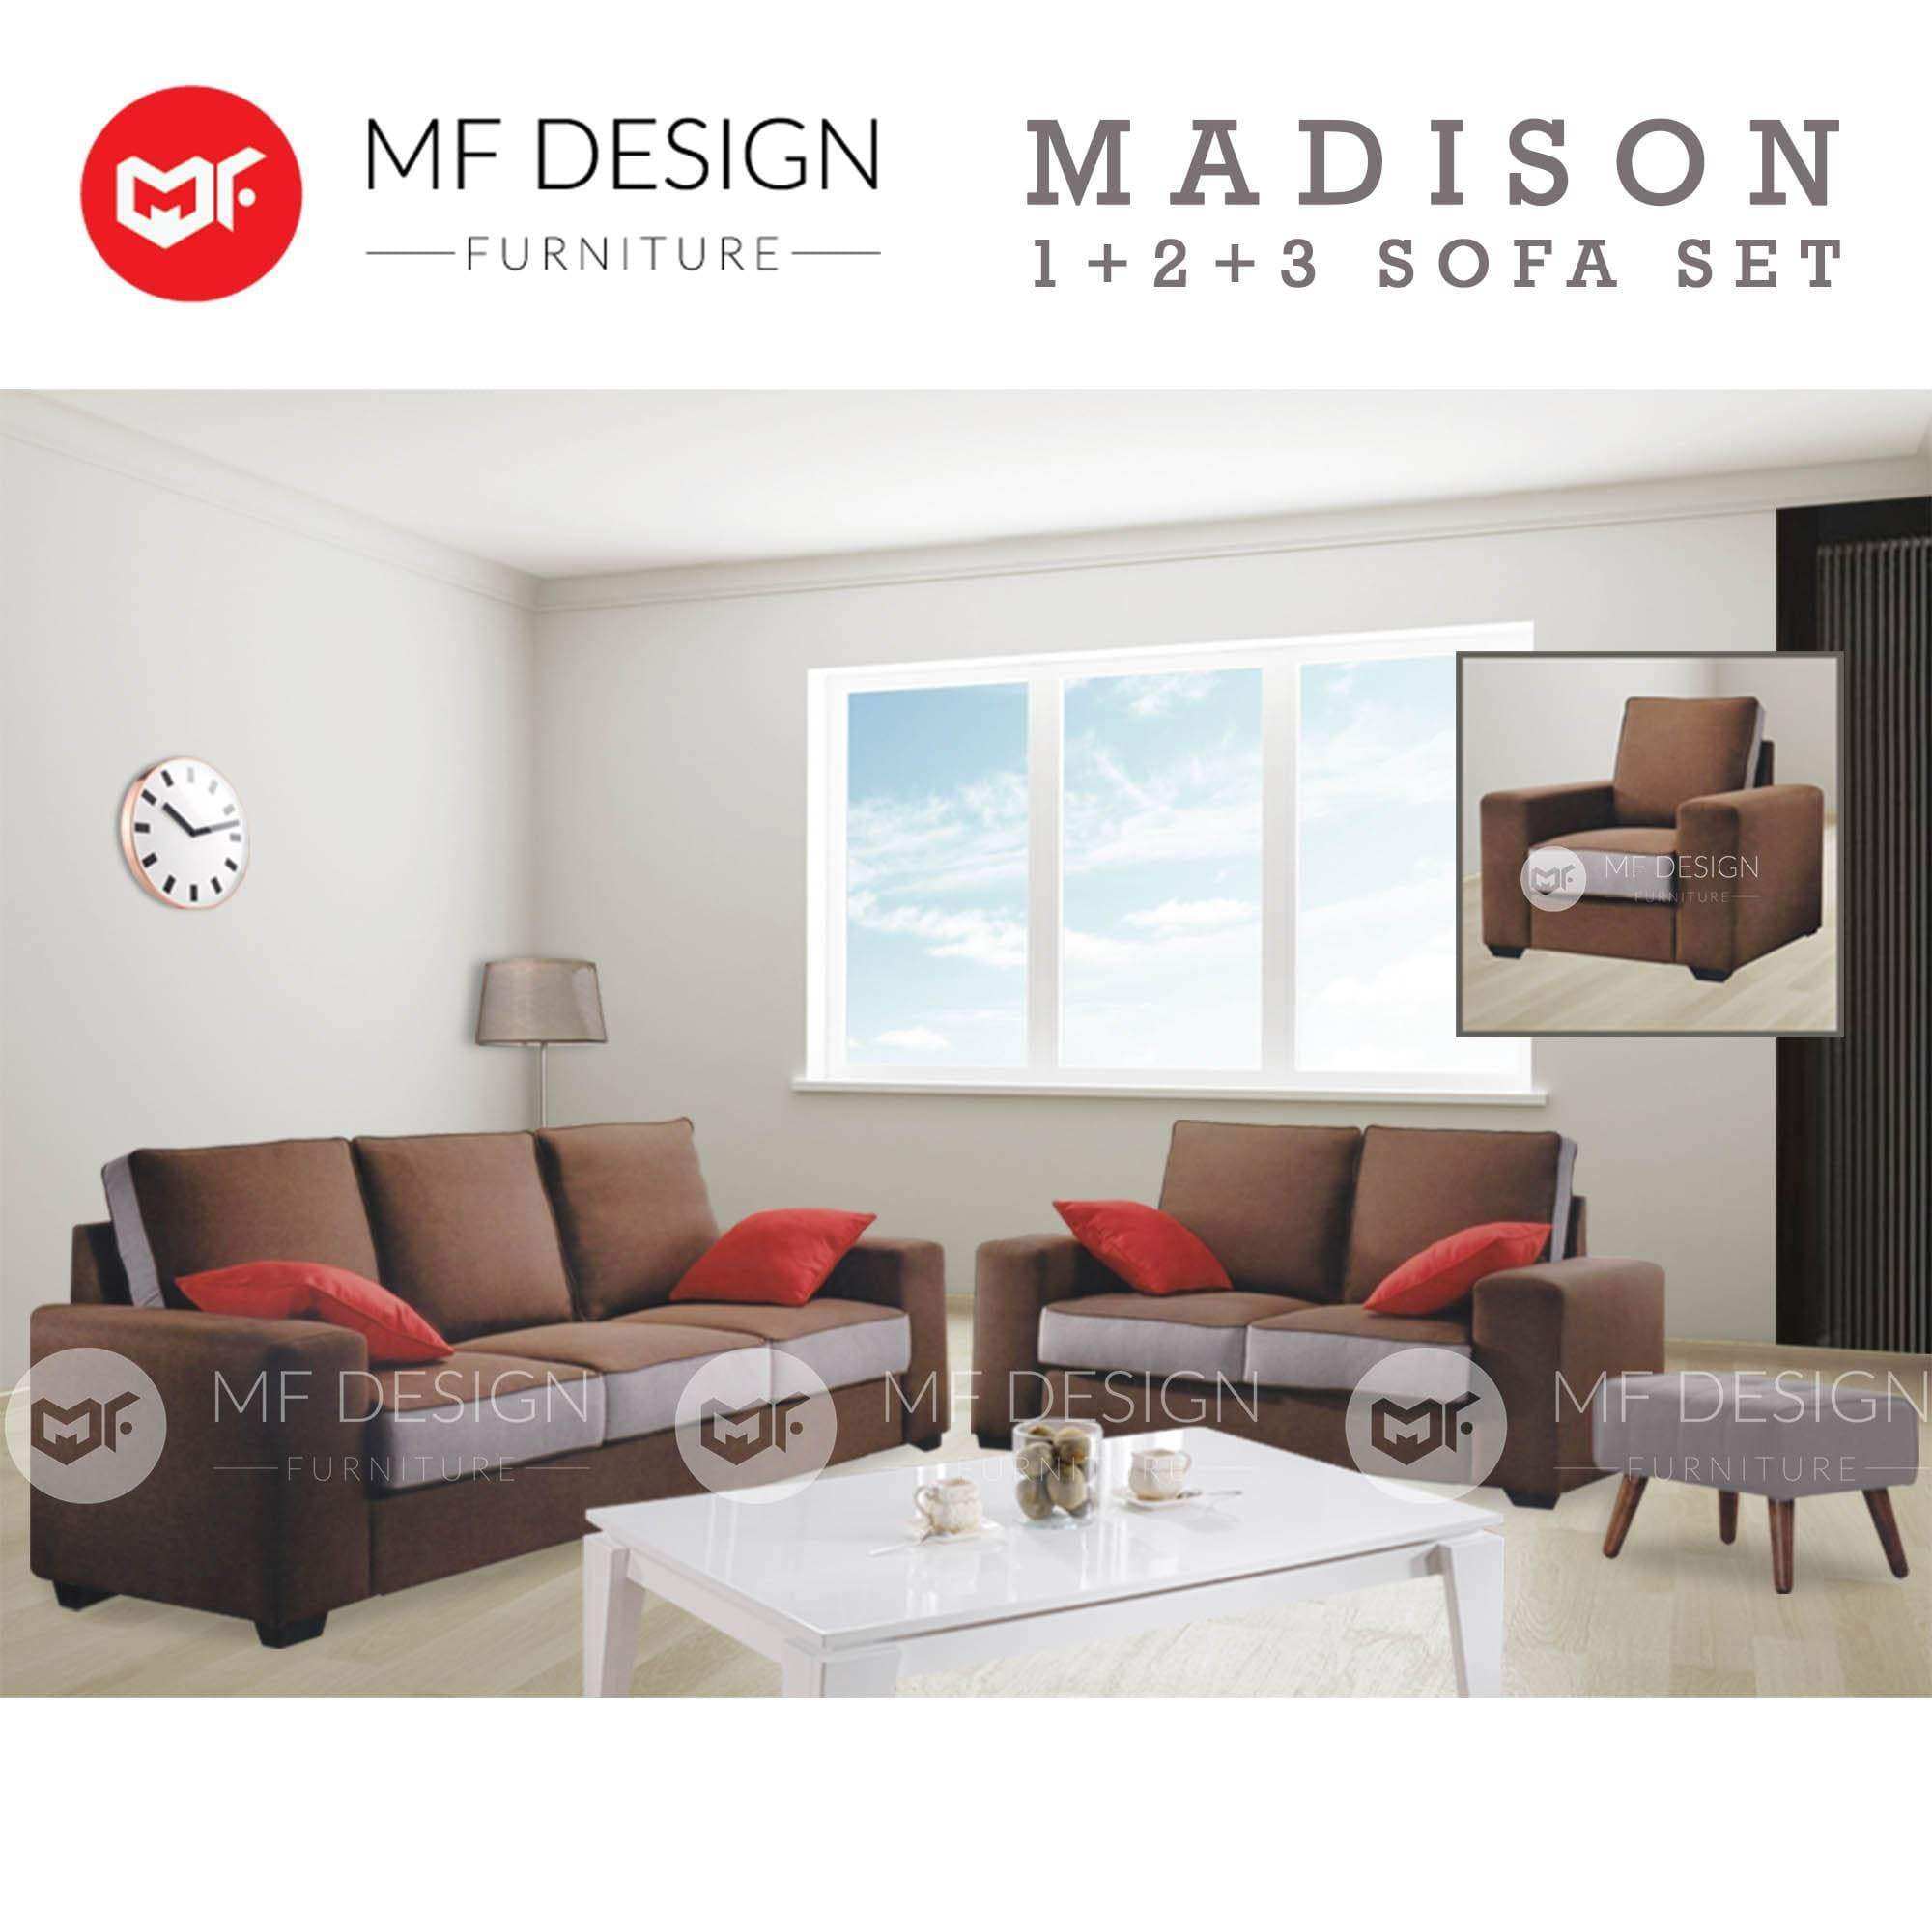 mfdesign88 Sofa Madison 1+2+3 Sofa Set